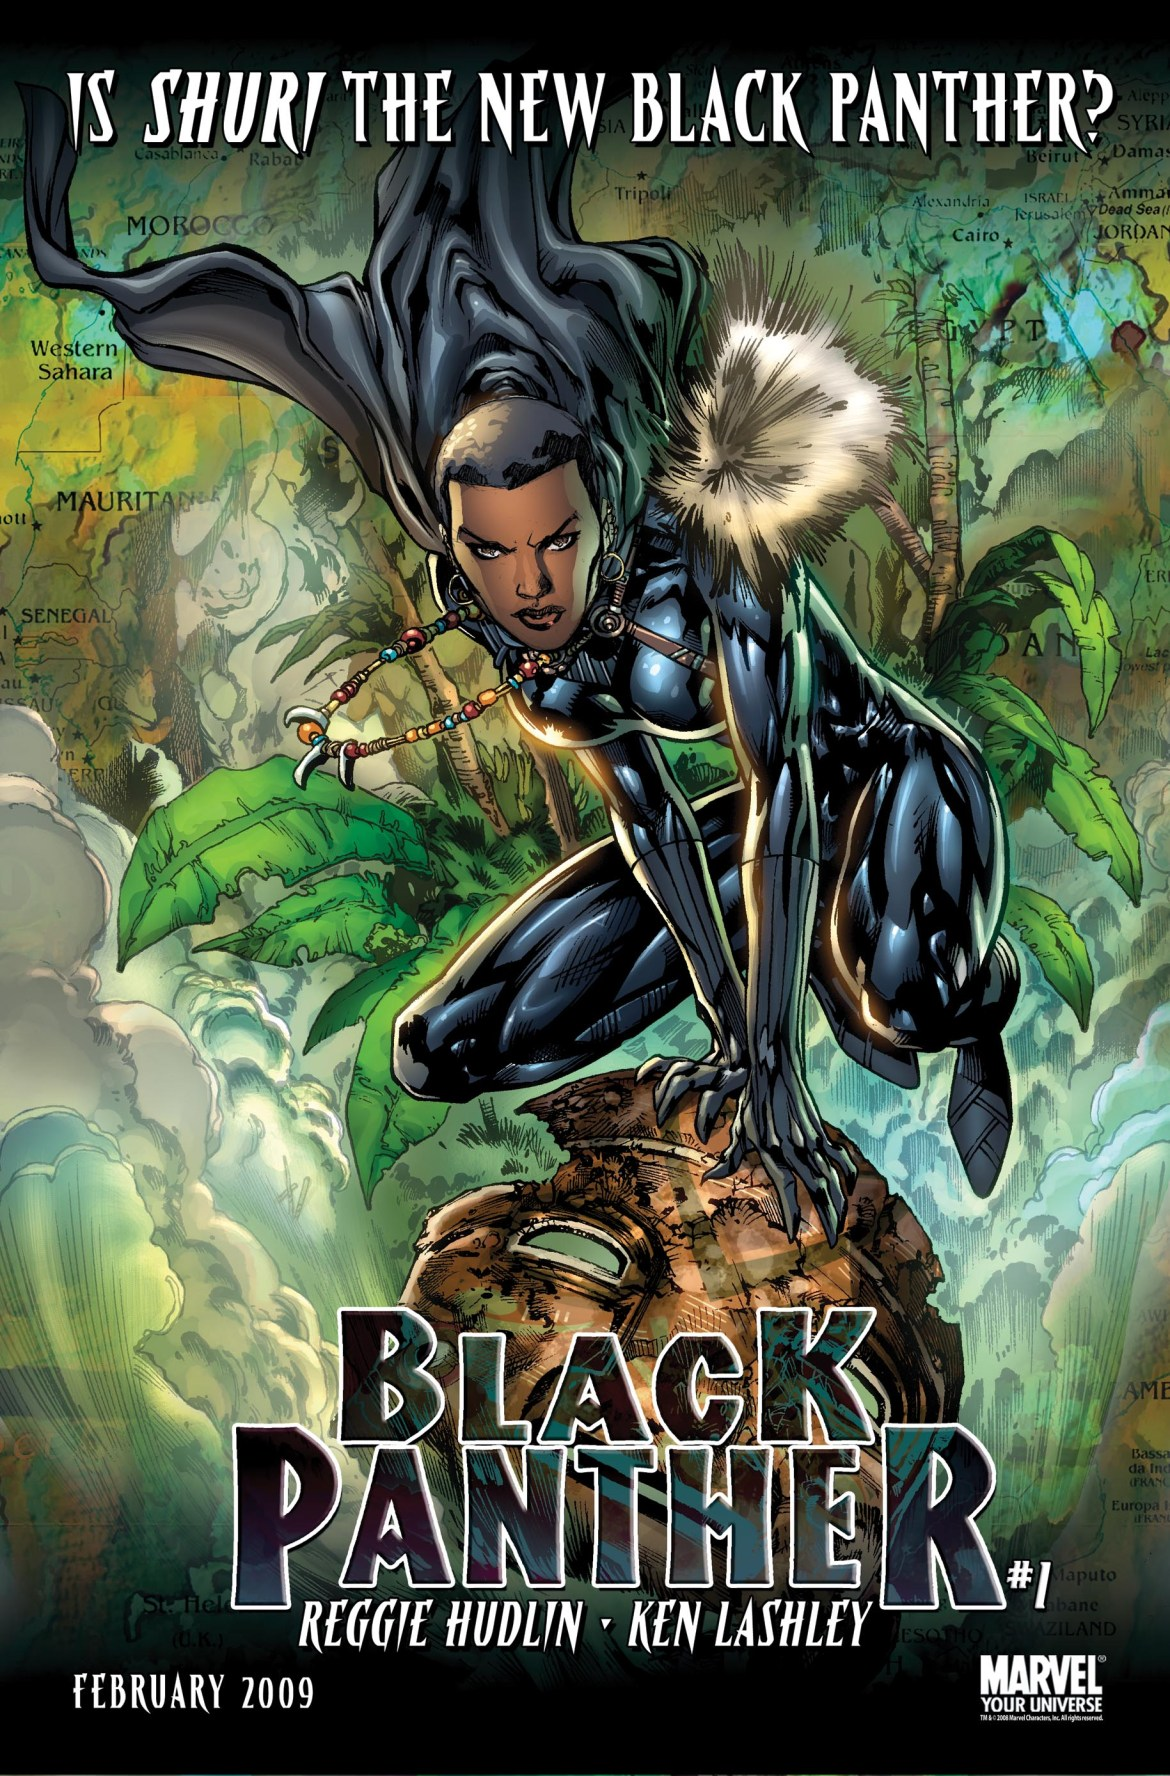 IsShuriTheNewBlackPanther Is Shuri The New Black Panther?